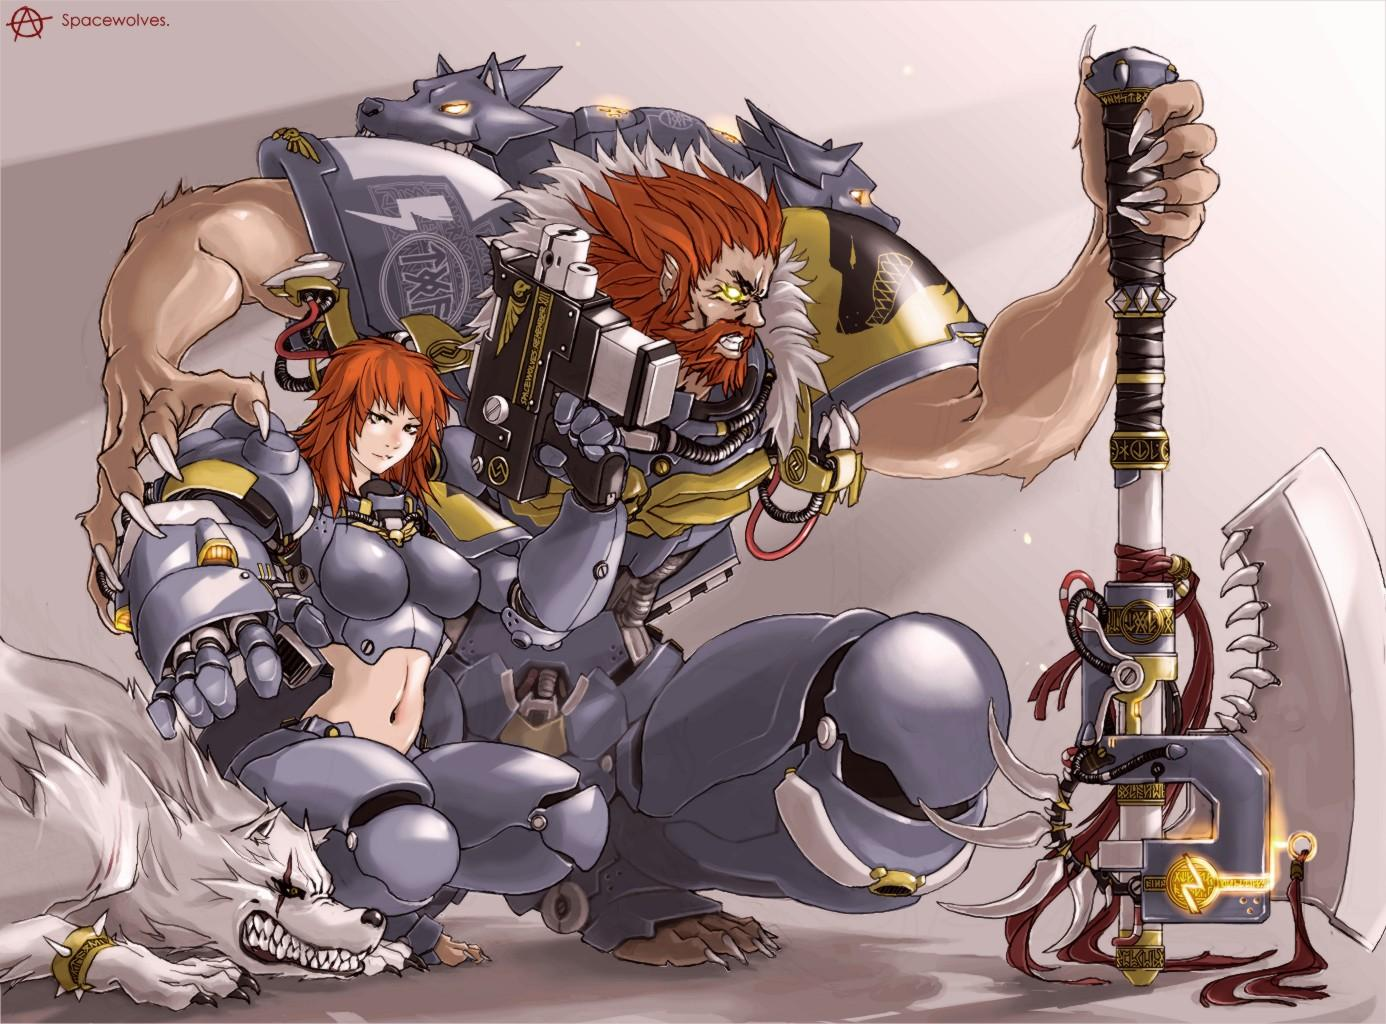 Artwork, Sexy, Space Wolves